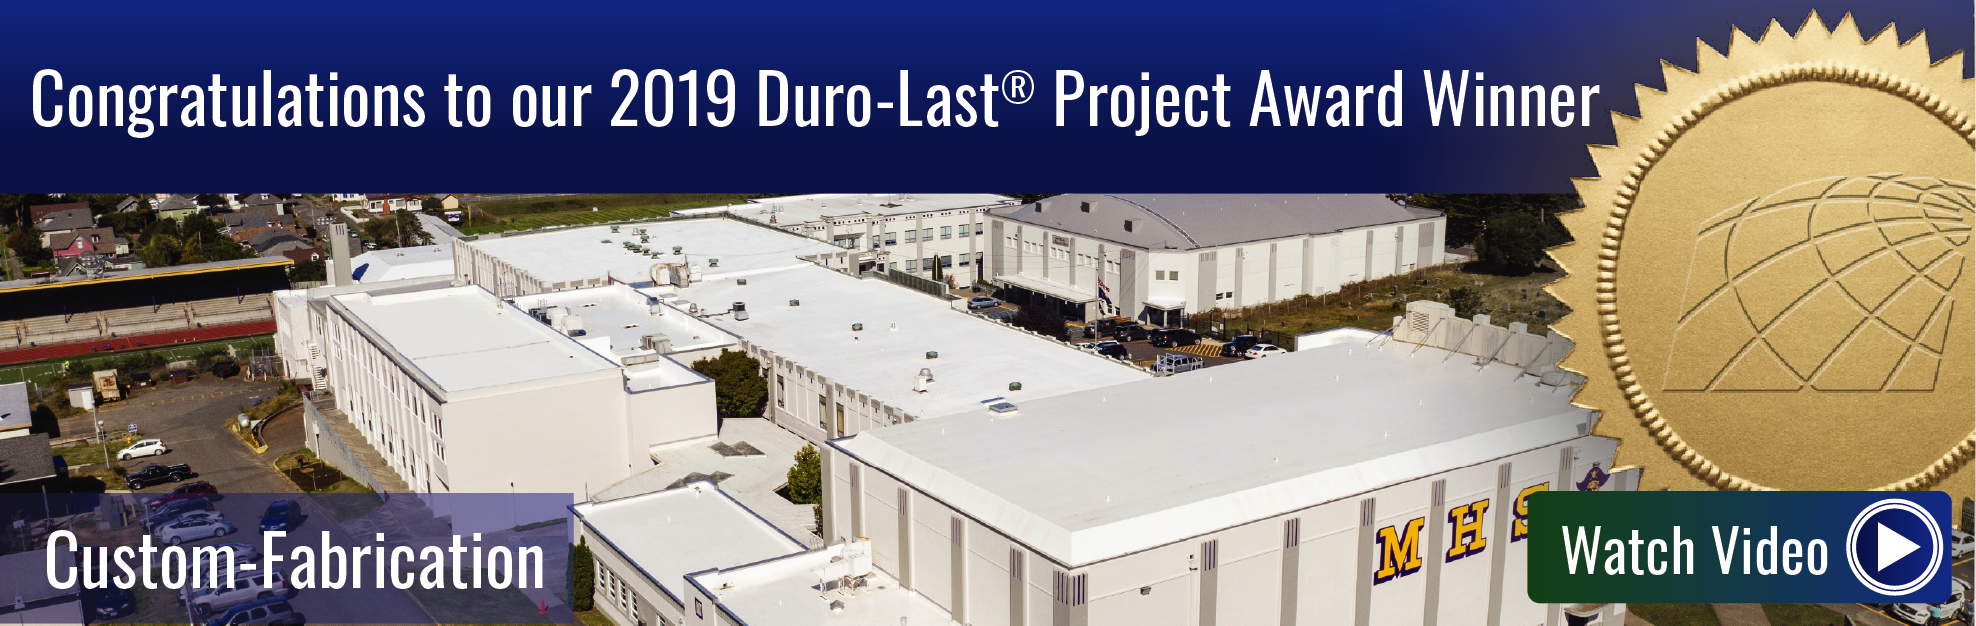 Duro-Last - Billboard Ad - Custom Fabrication 2019 Winner